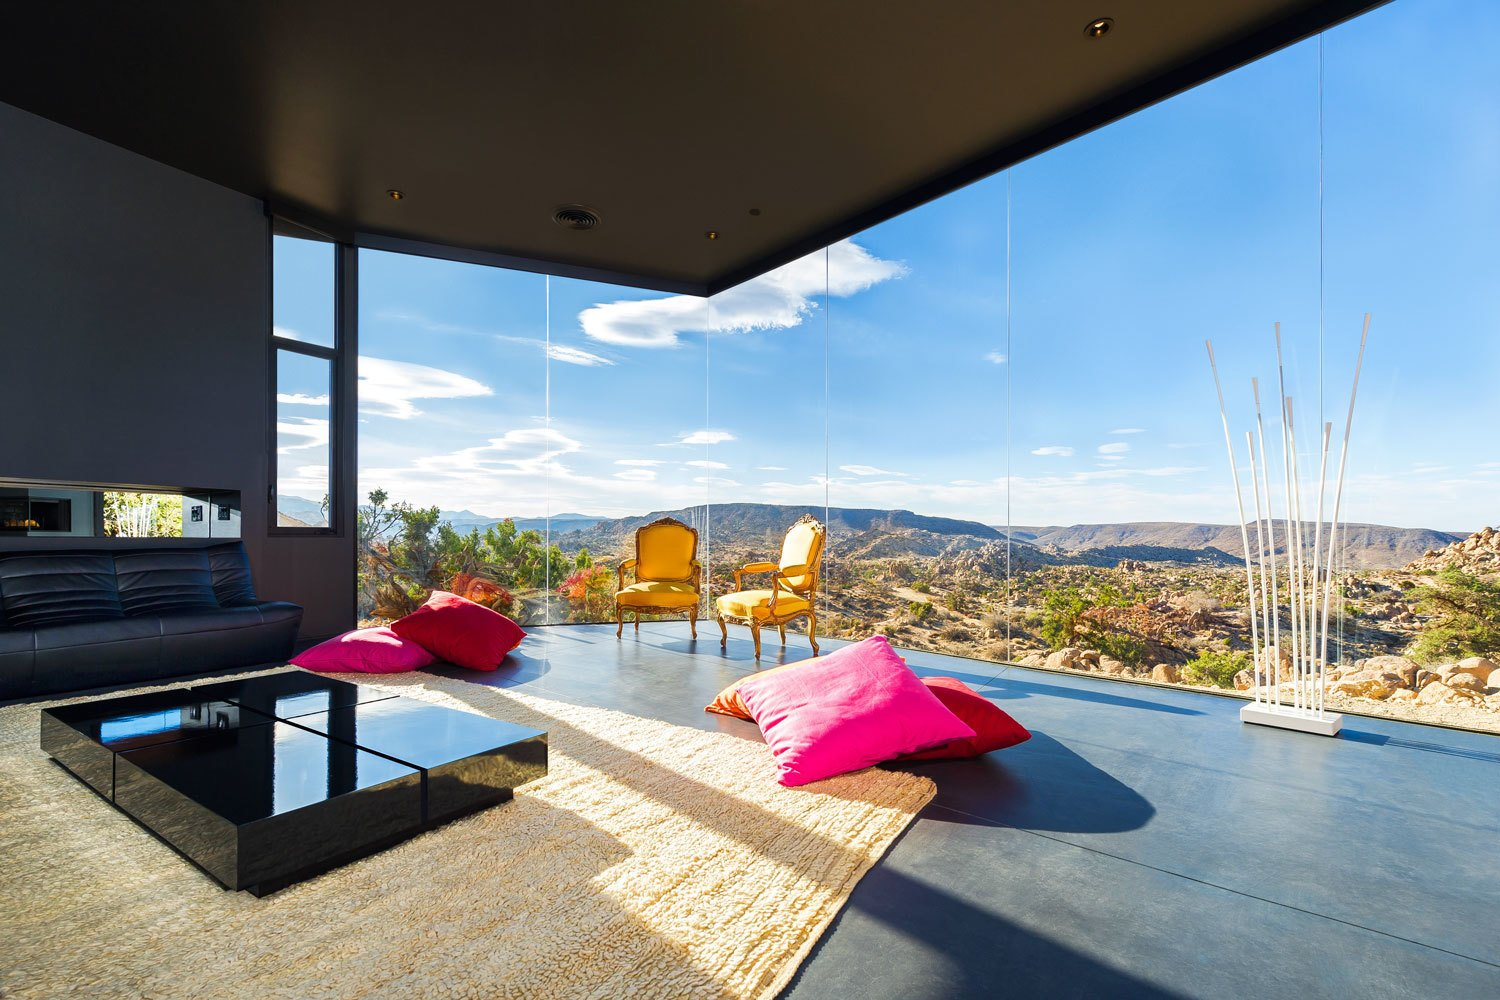 After sundown, the house itself seems to dematerialize into a dark starry expanse. For that reason, the homeowners have likened the living room to a campsite.